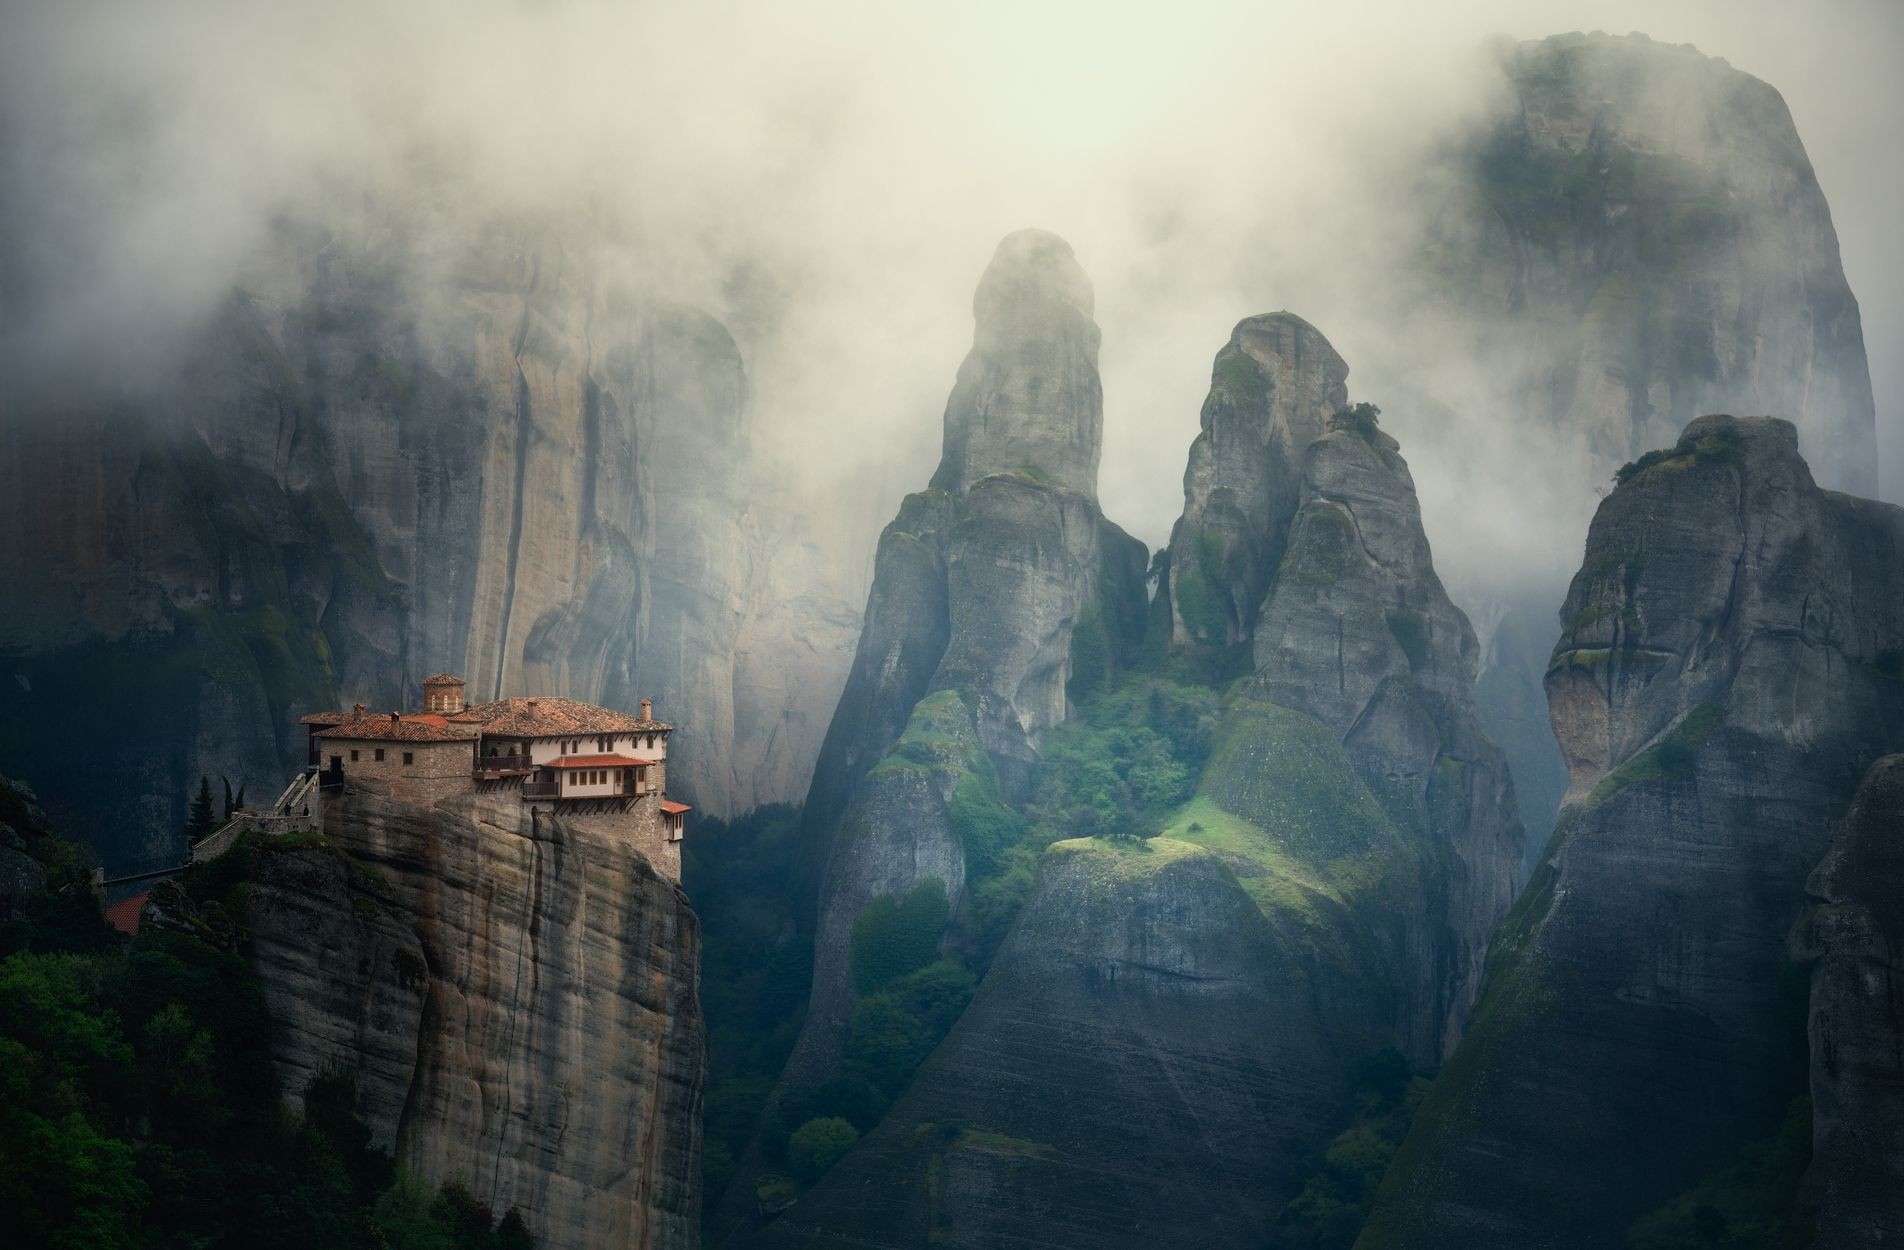 Monastery in the Mist